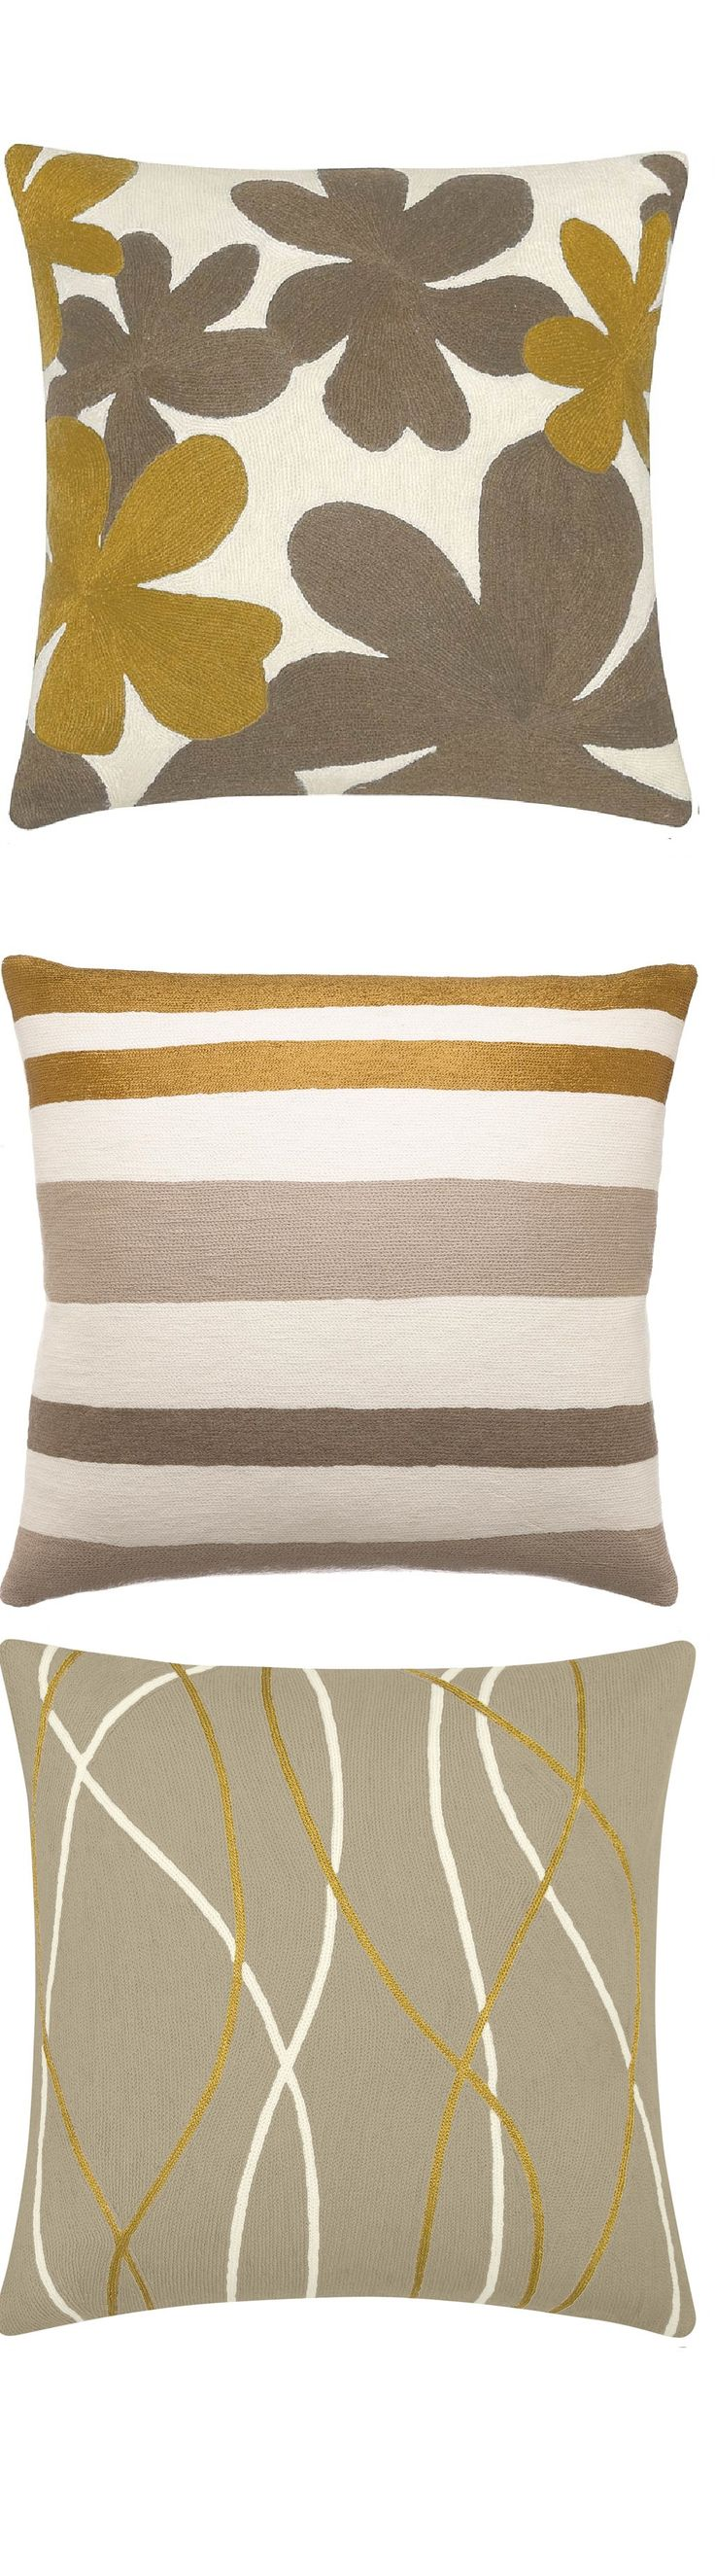 Throw Pillows Ideas For Grey Couch : 17 Best images about Gray Pillows on Pinterest Sofa pillows, Gray and Throw pillows